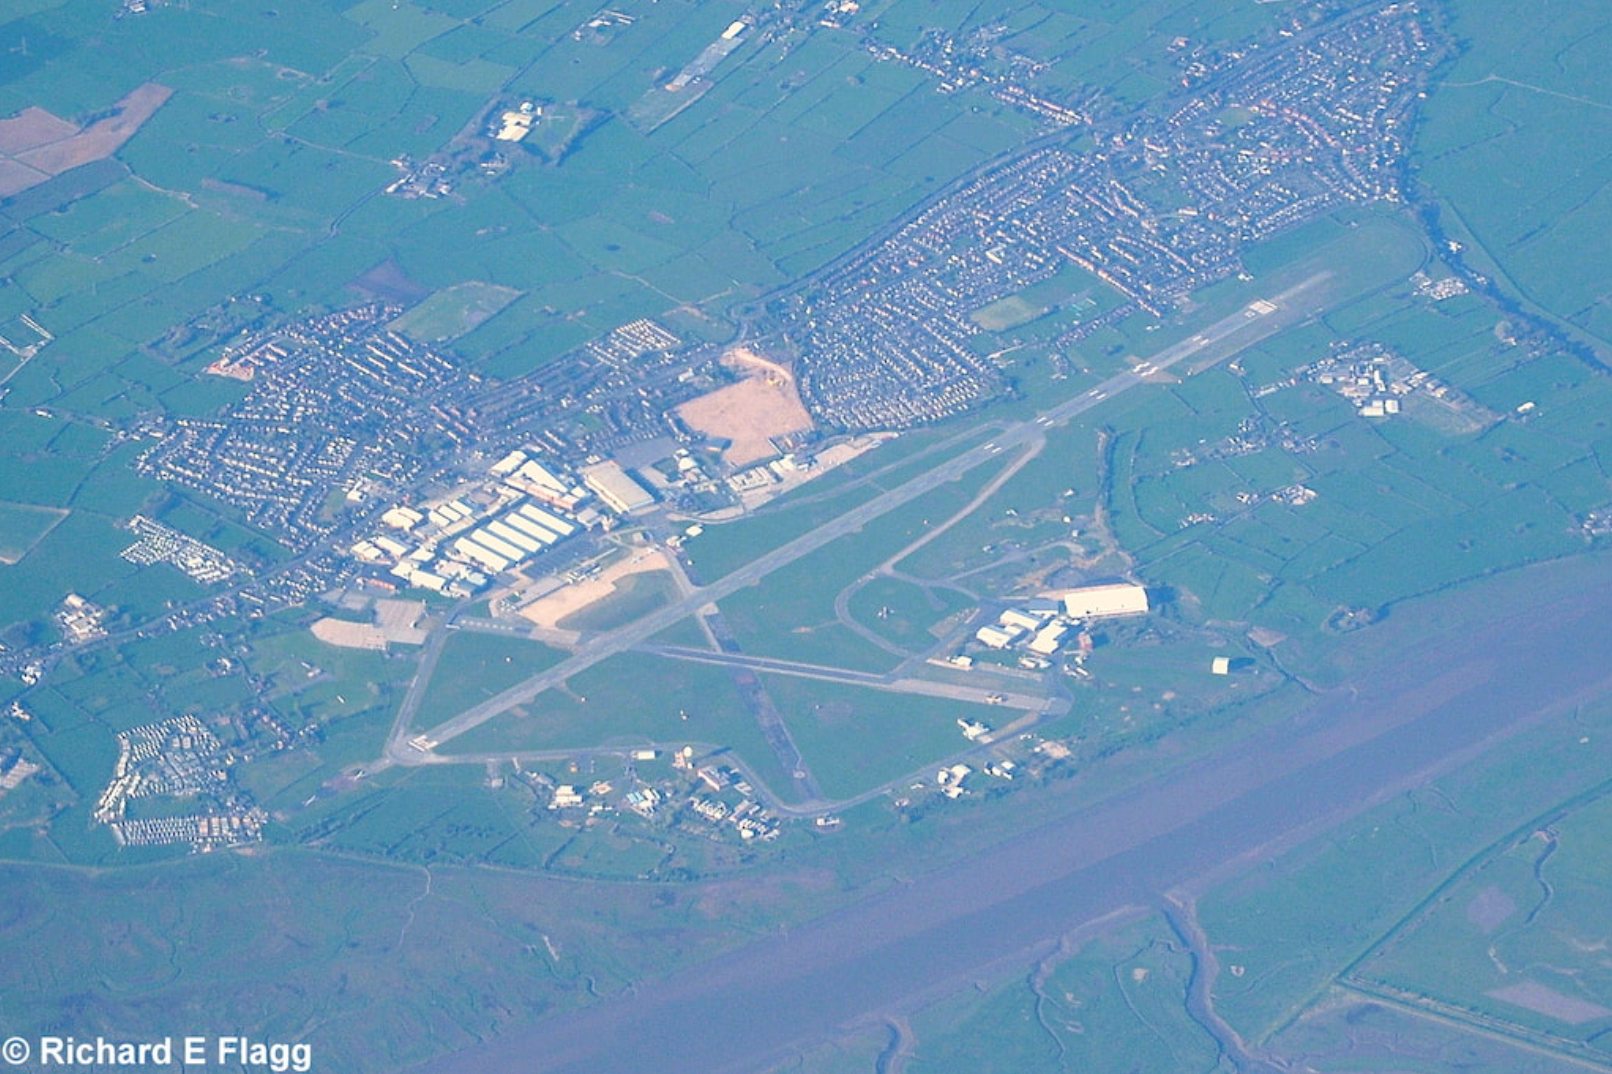 001Aerial View of Warton Airfield - 18 April 2014.png